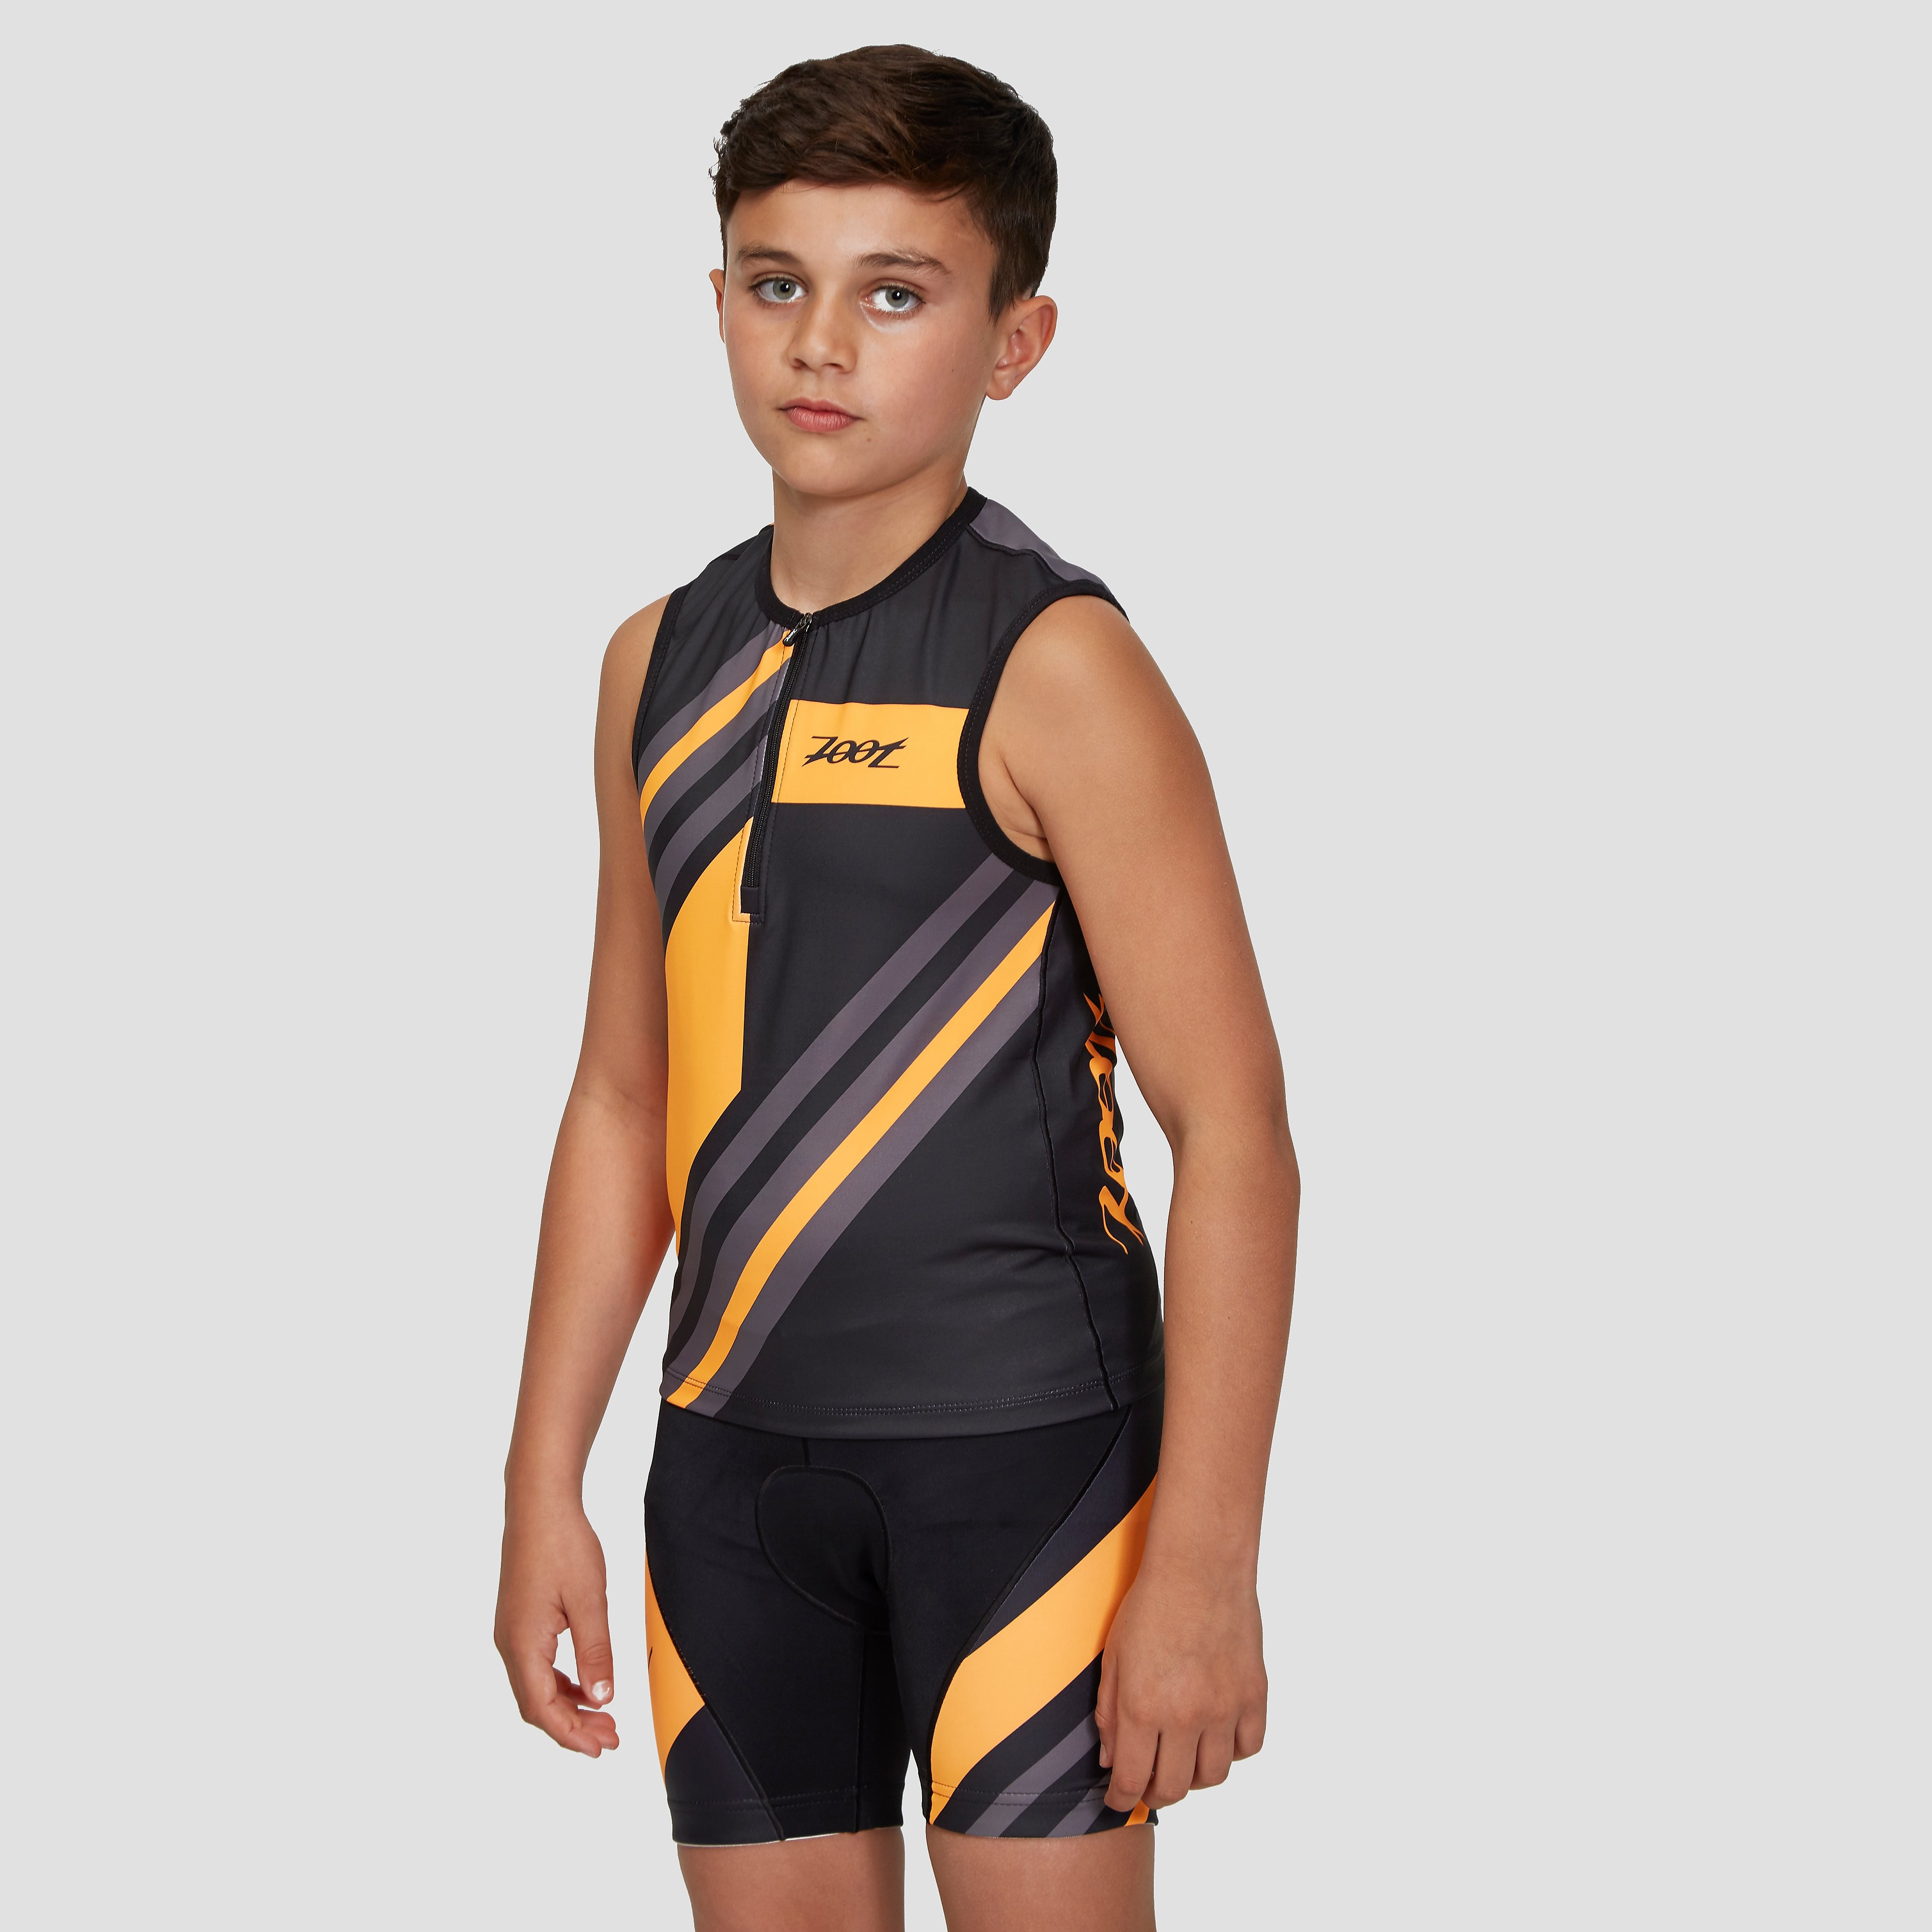 Zoot Protege Junior Triathlon Top